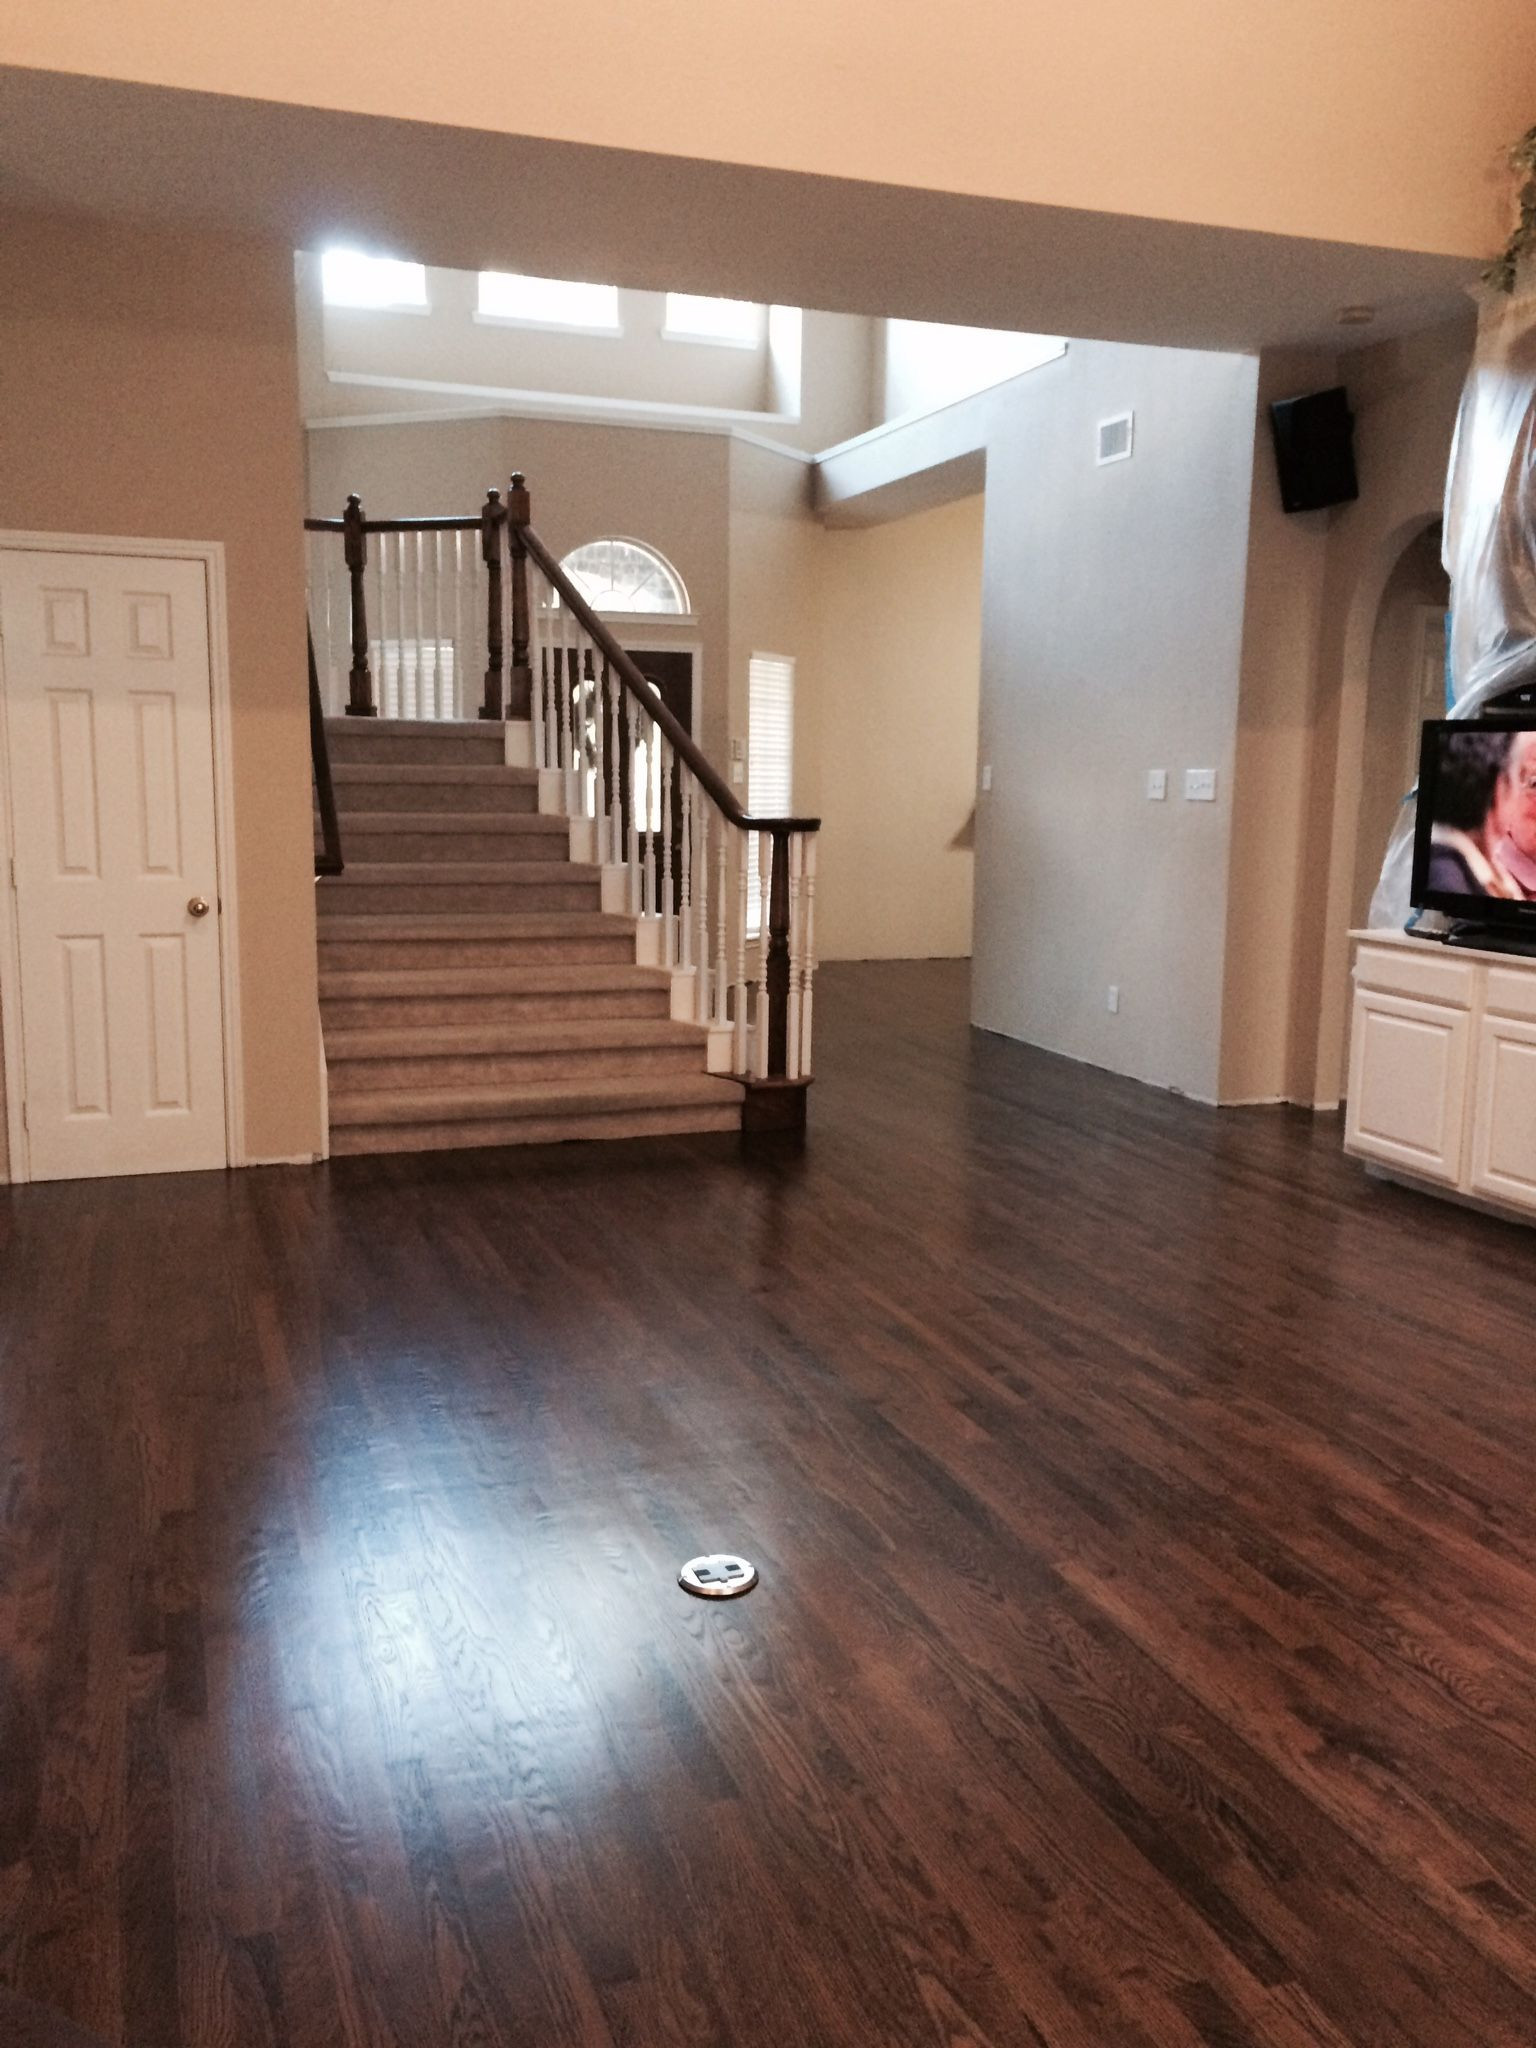 hardwood flooring installation alpharetta ga of dark walnut stain on white oak hardwood remodel 1floors in 2018 throughout dark walnut stain on white oak hardwood walnut hardwood flooring hardwood floor stain colors